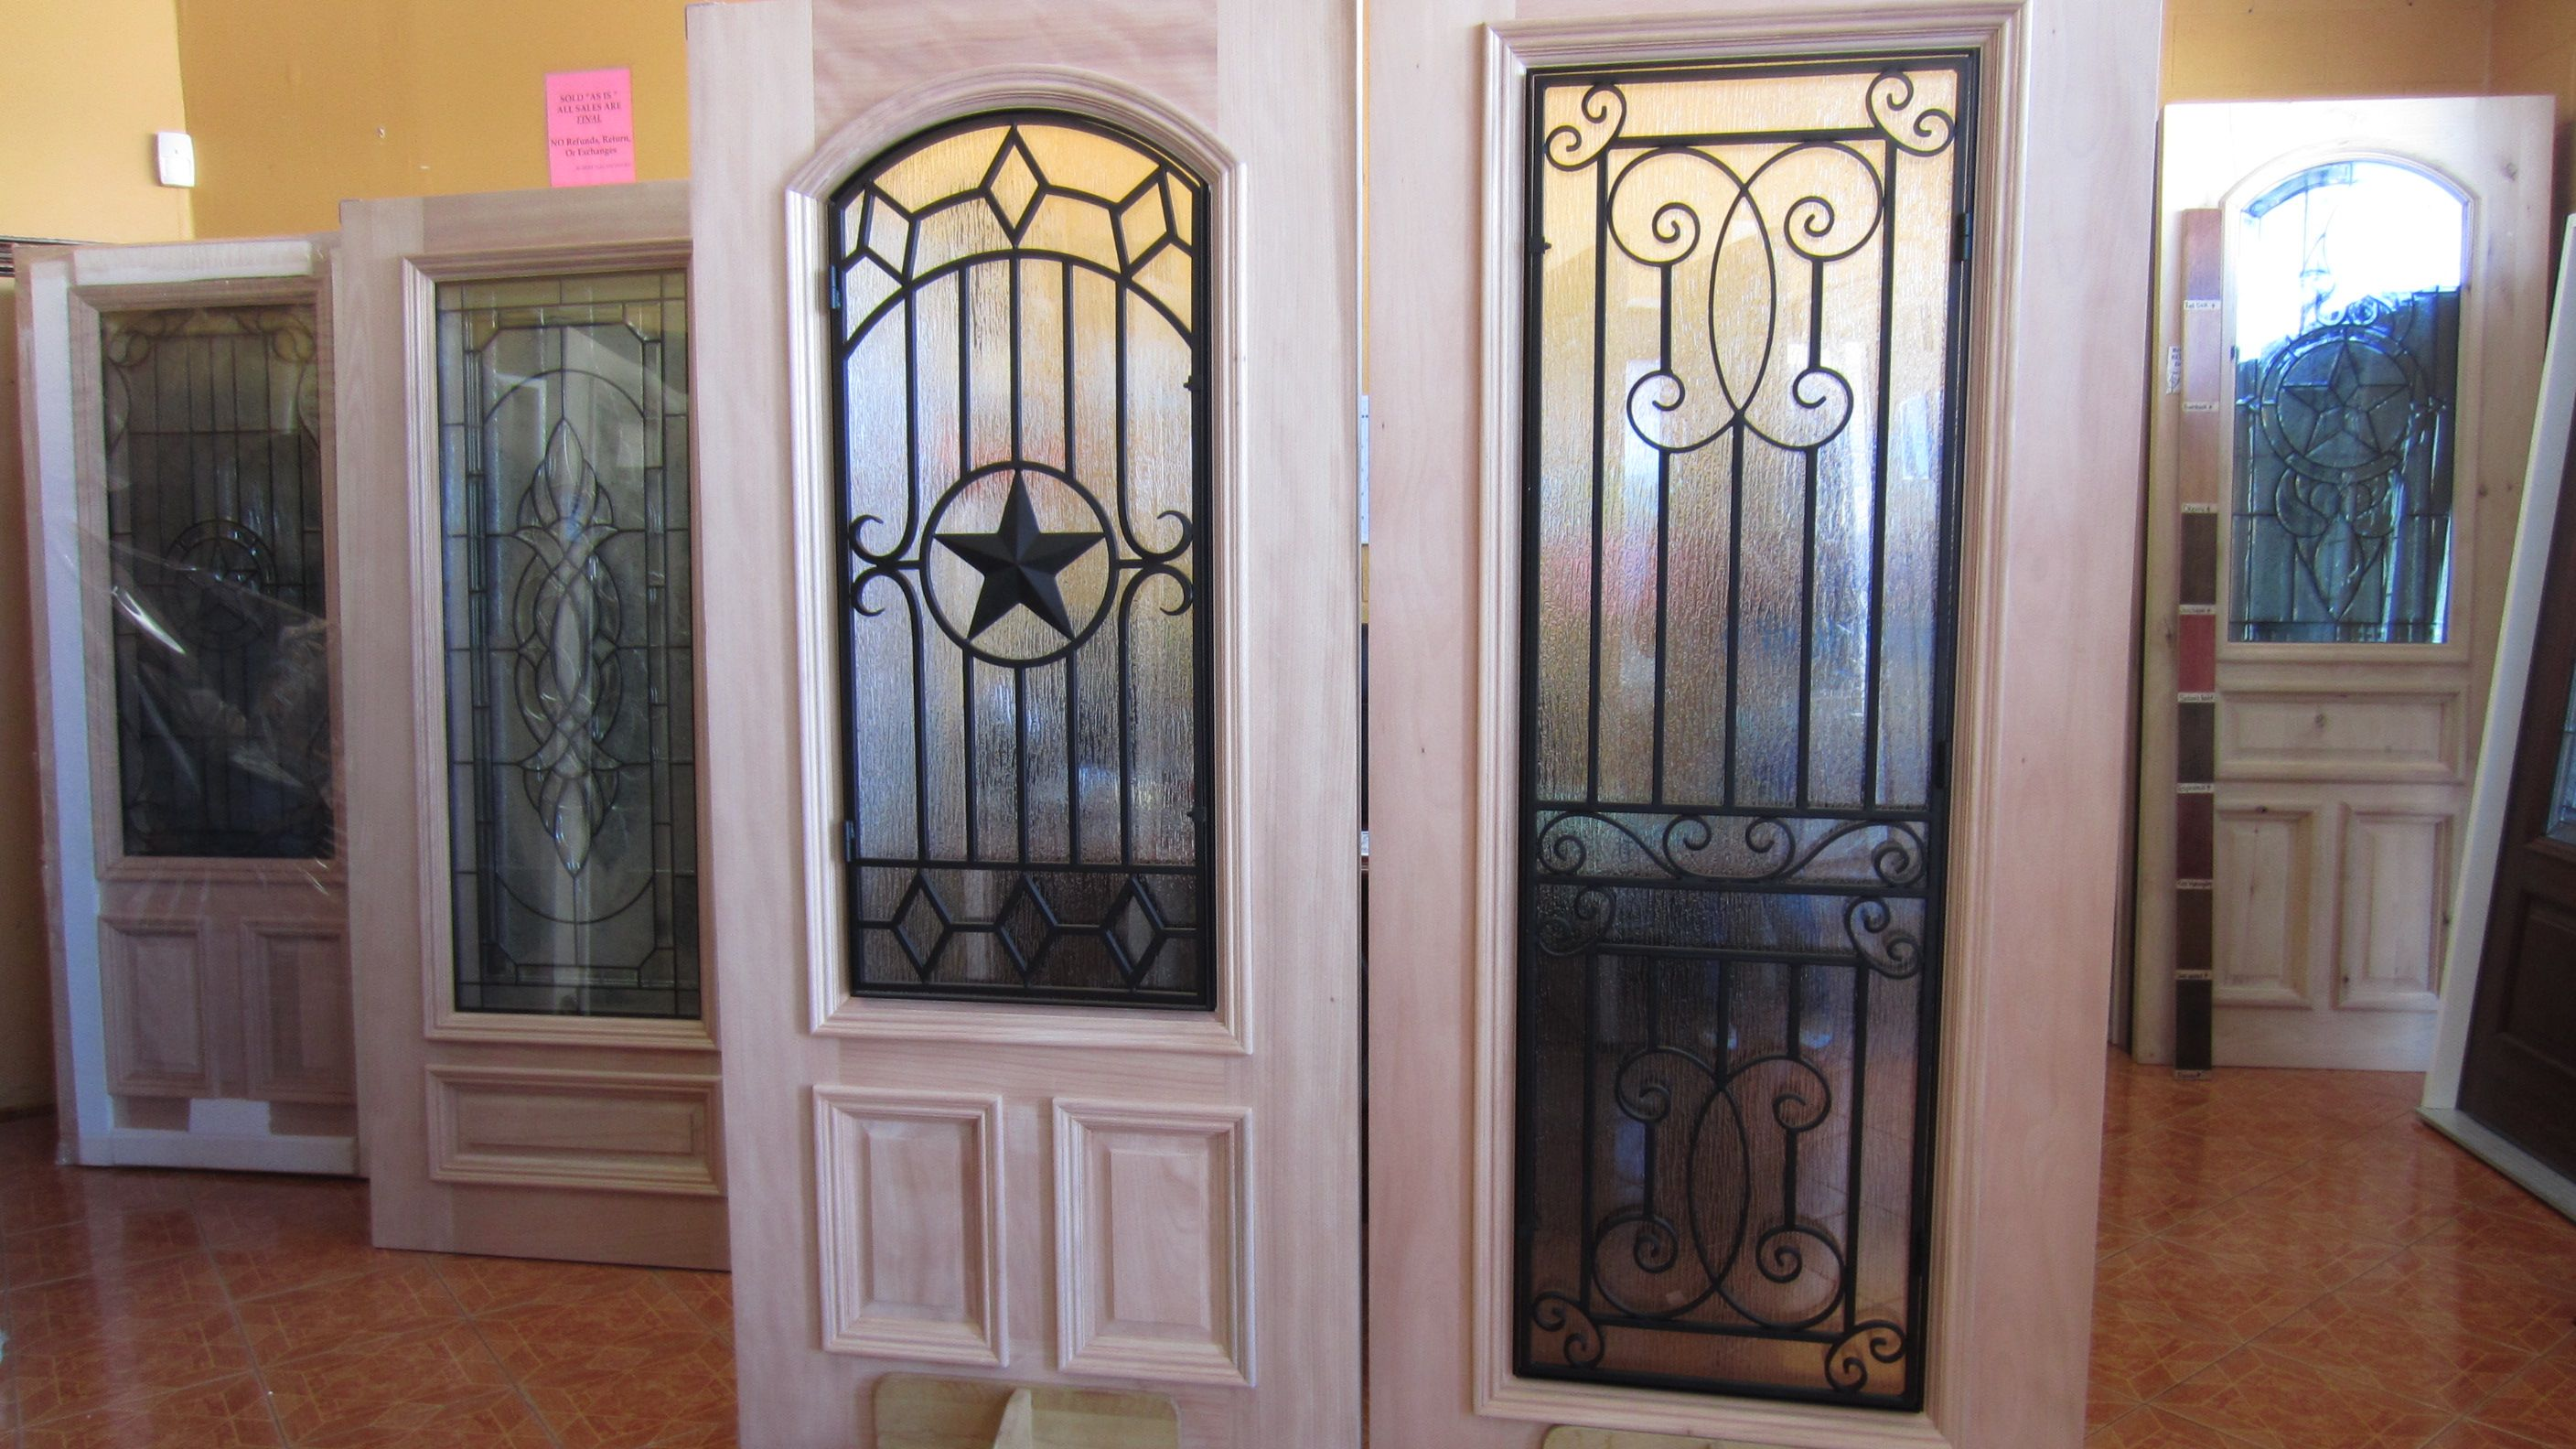 http://robertsdoors.webs.com/  TEXAS STAR - HOUSTON - TEXAS - MAHOGANY WOOD - DOORS - DOORS FOR SALE - AFFORDABLE PRICES - HOUSTON DEALS - KNOTTY ALDER WOOD - FRONT DOORS - EXTERIOR DOORS - HOME IMPROVEMENT - REMODELING - DOOR INSTALLATION - STAINING - HOME - DELIVERY